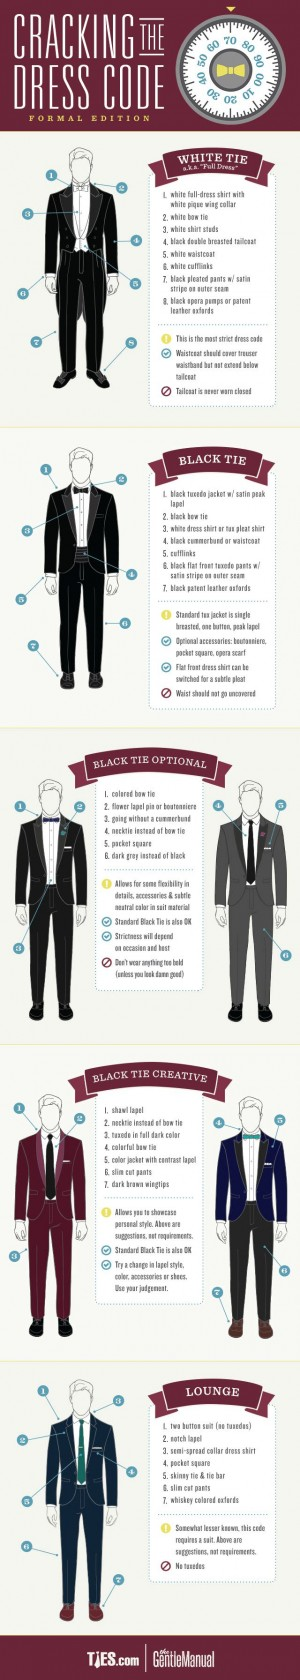 different dress codes